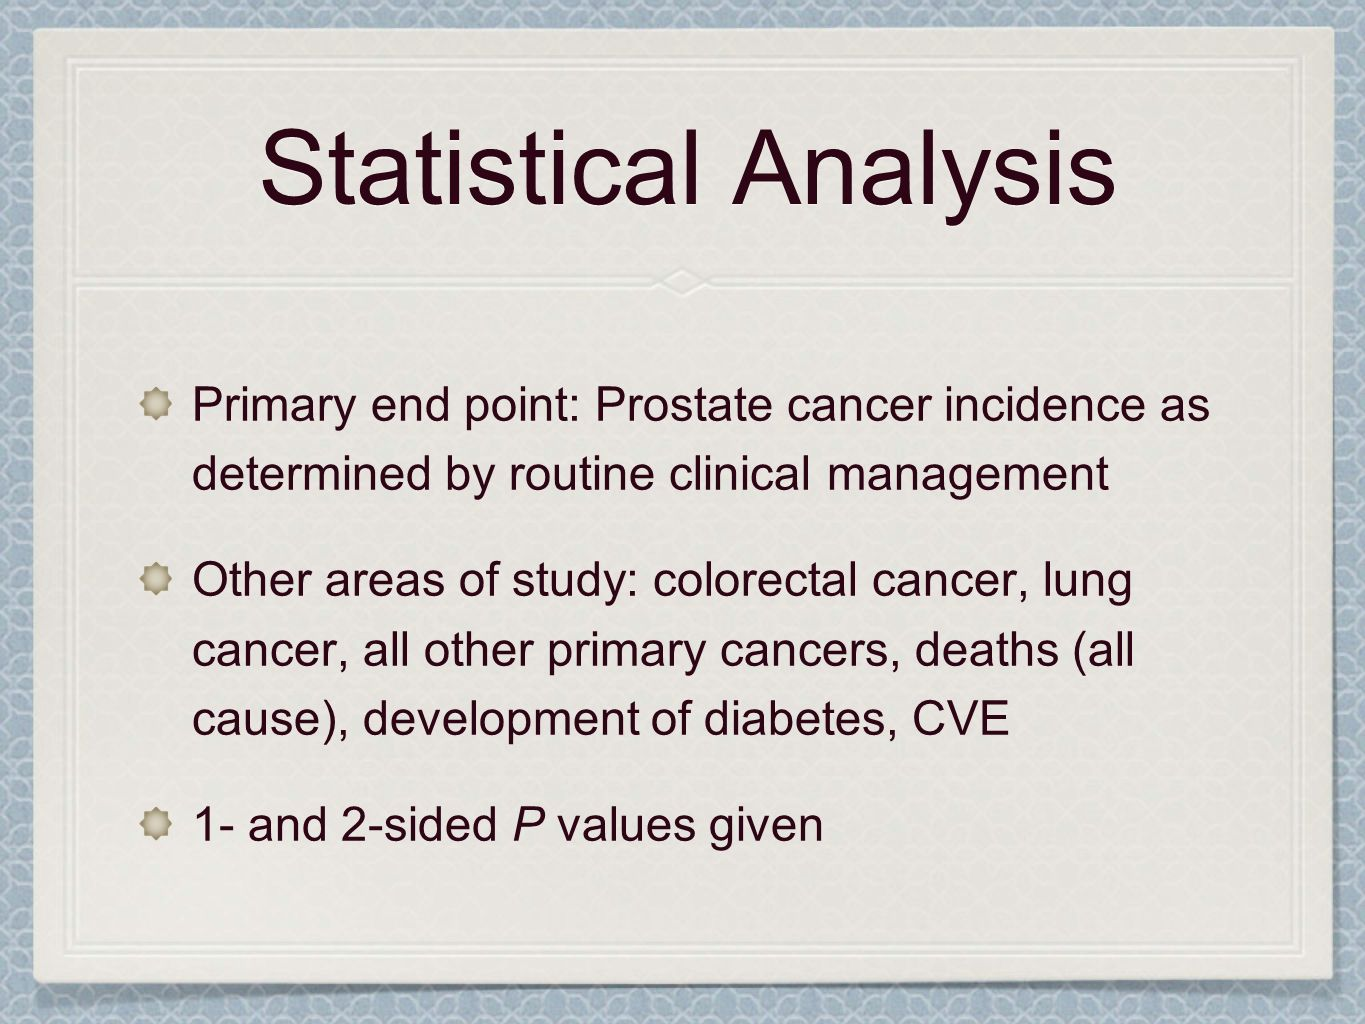 Statistical AnalysisPrimary end point: Prostate cancer incidence as determined by routine clinical management.